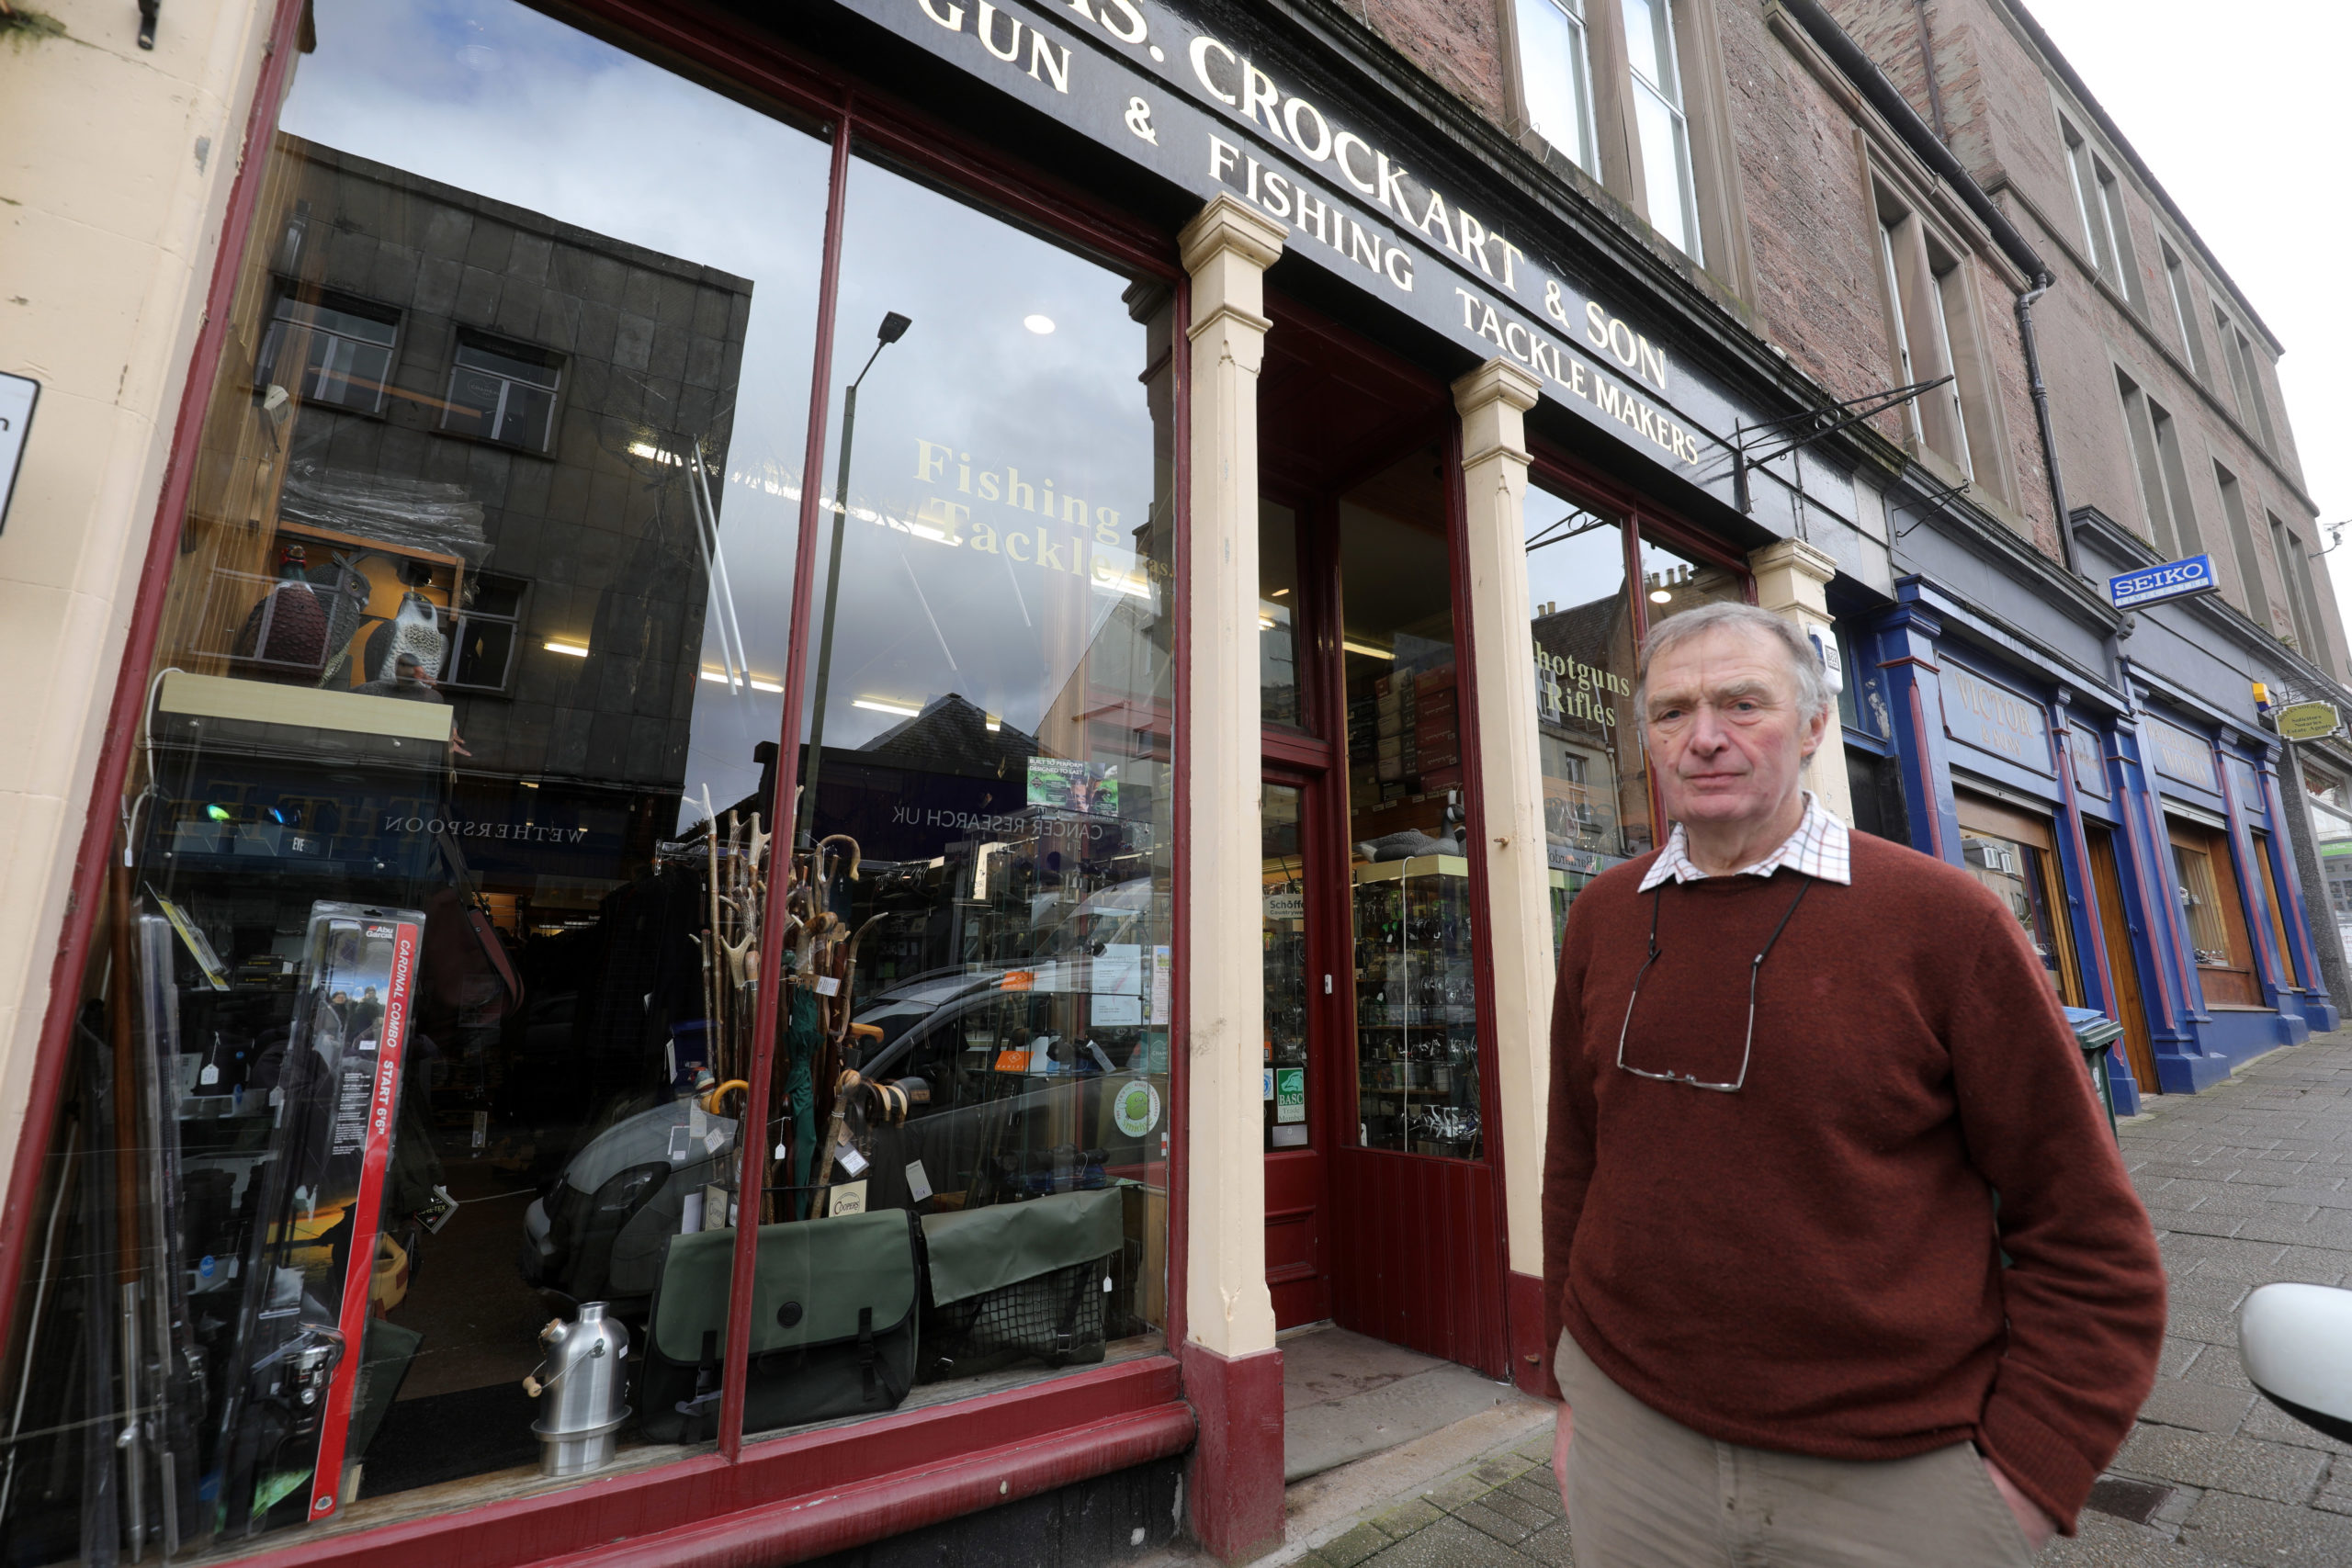 Robert Jamieson at his store in Alan st, Blairgowrie